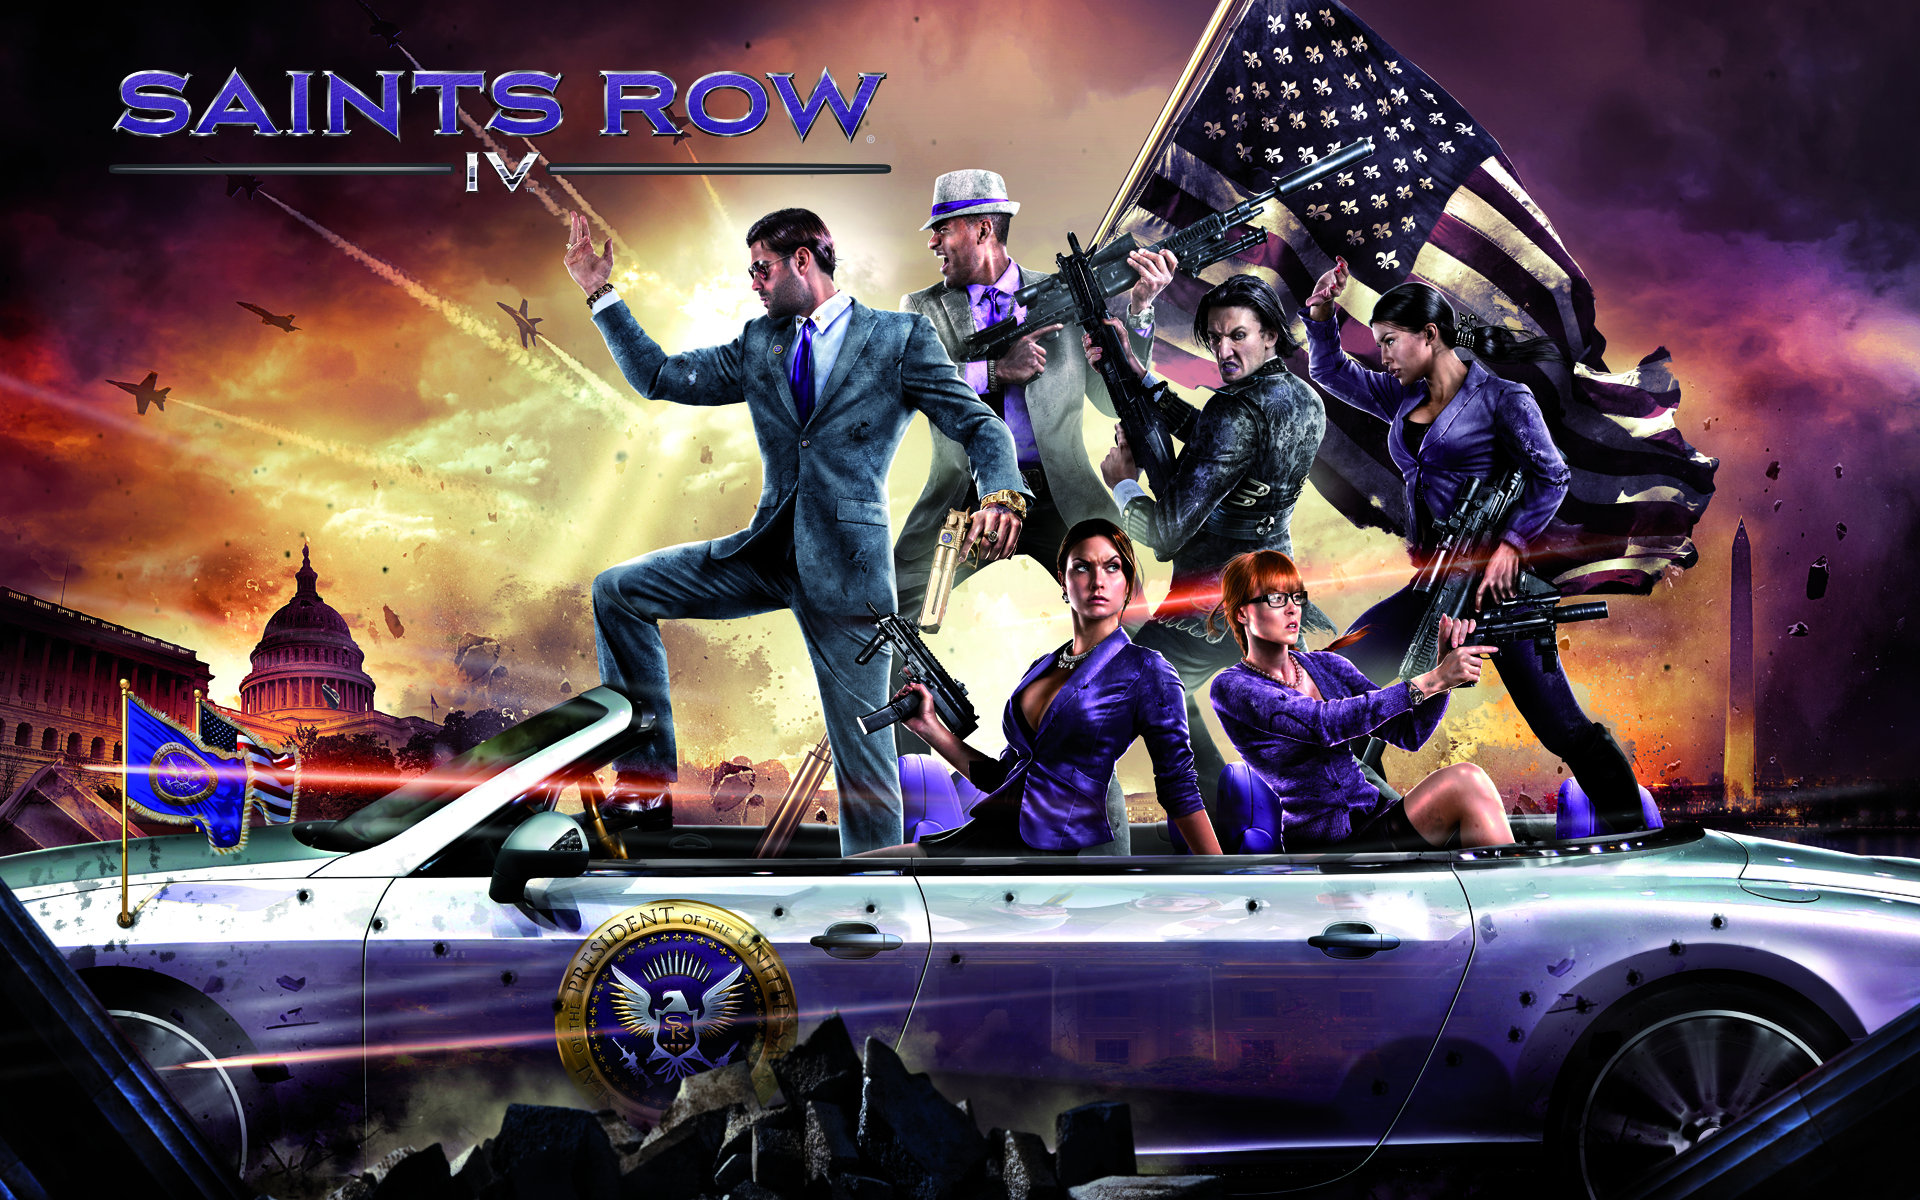 12 Revolutionary Games Just Like Saints Row (But Even Better